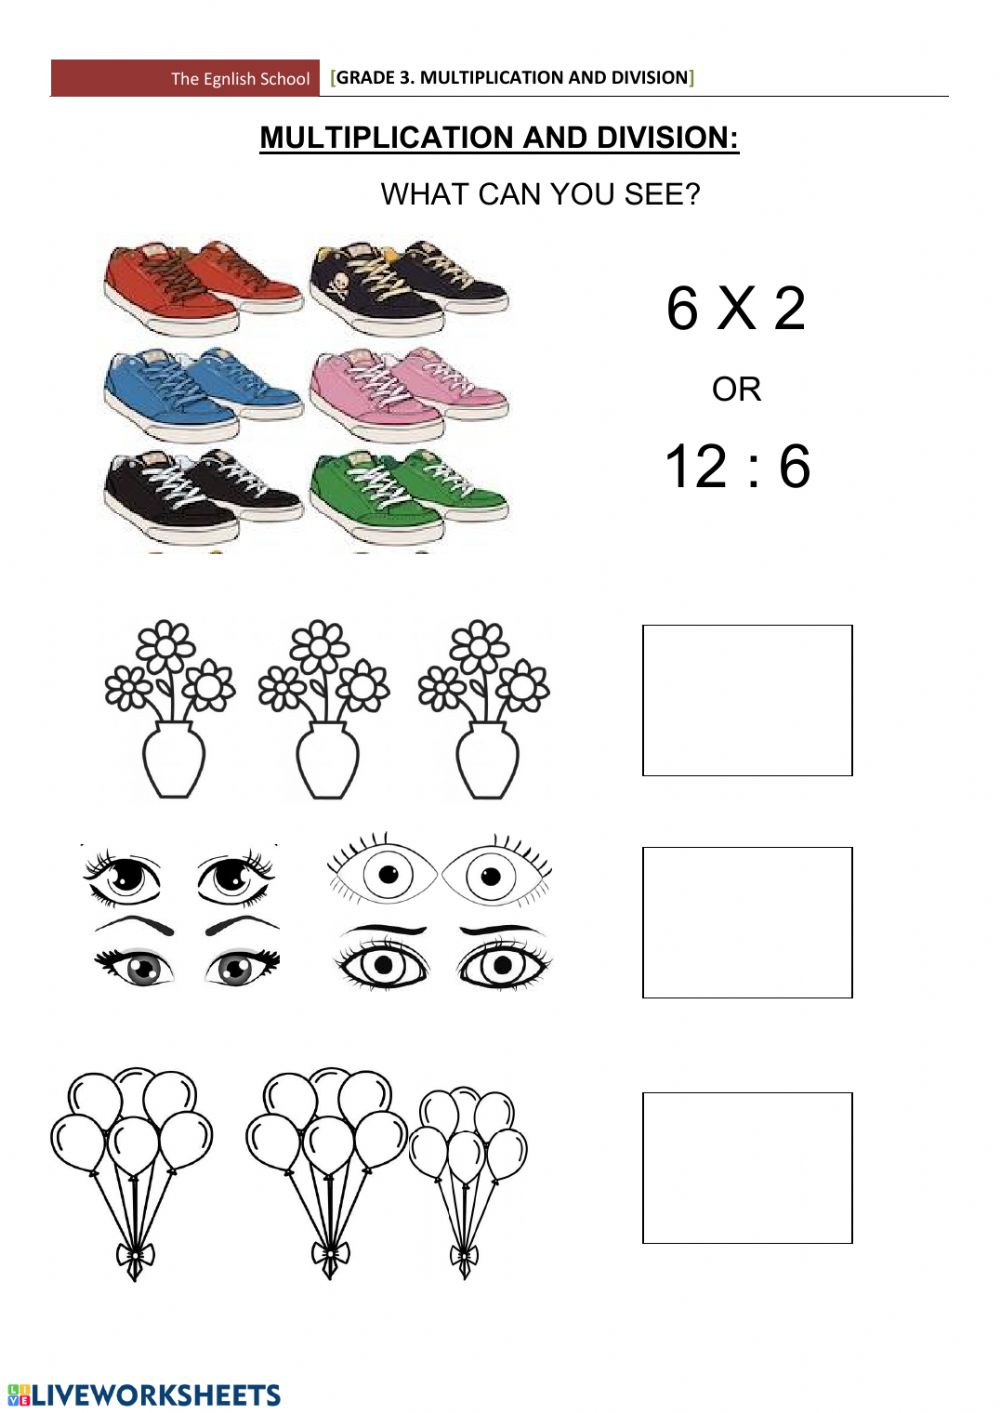 Grade 3 Mathematics Worksheet